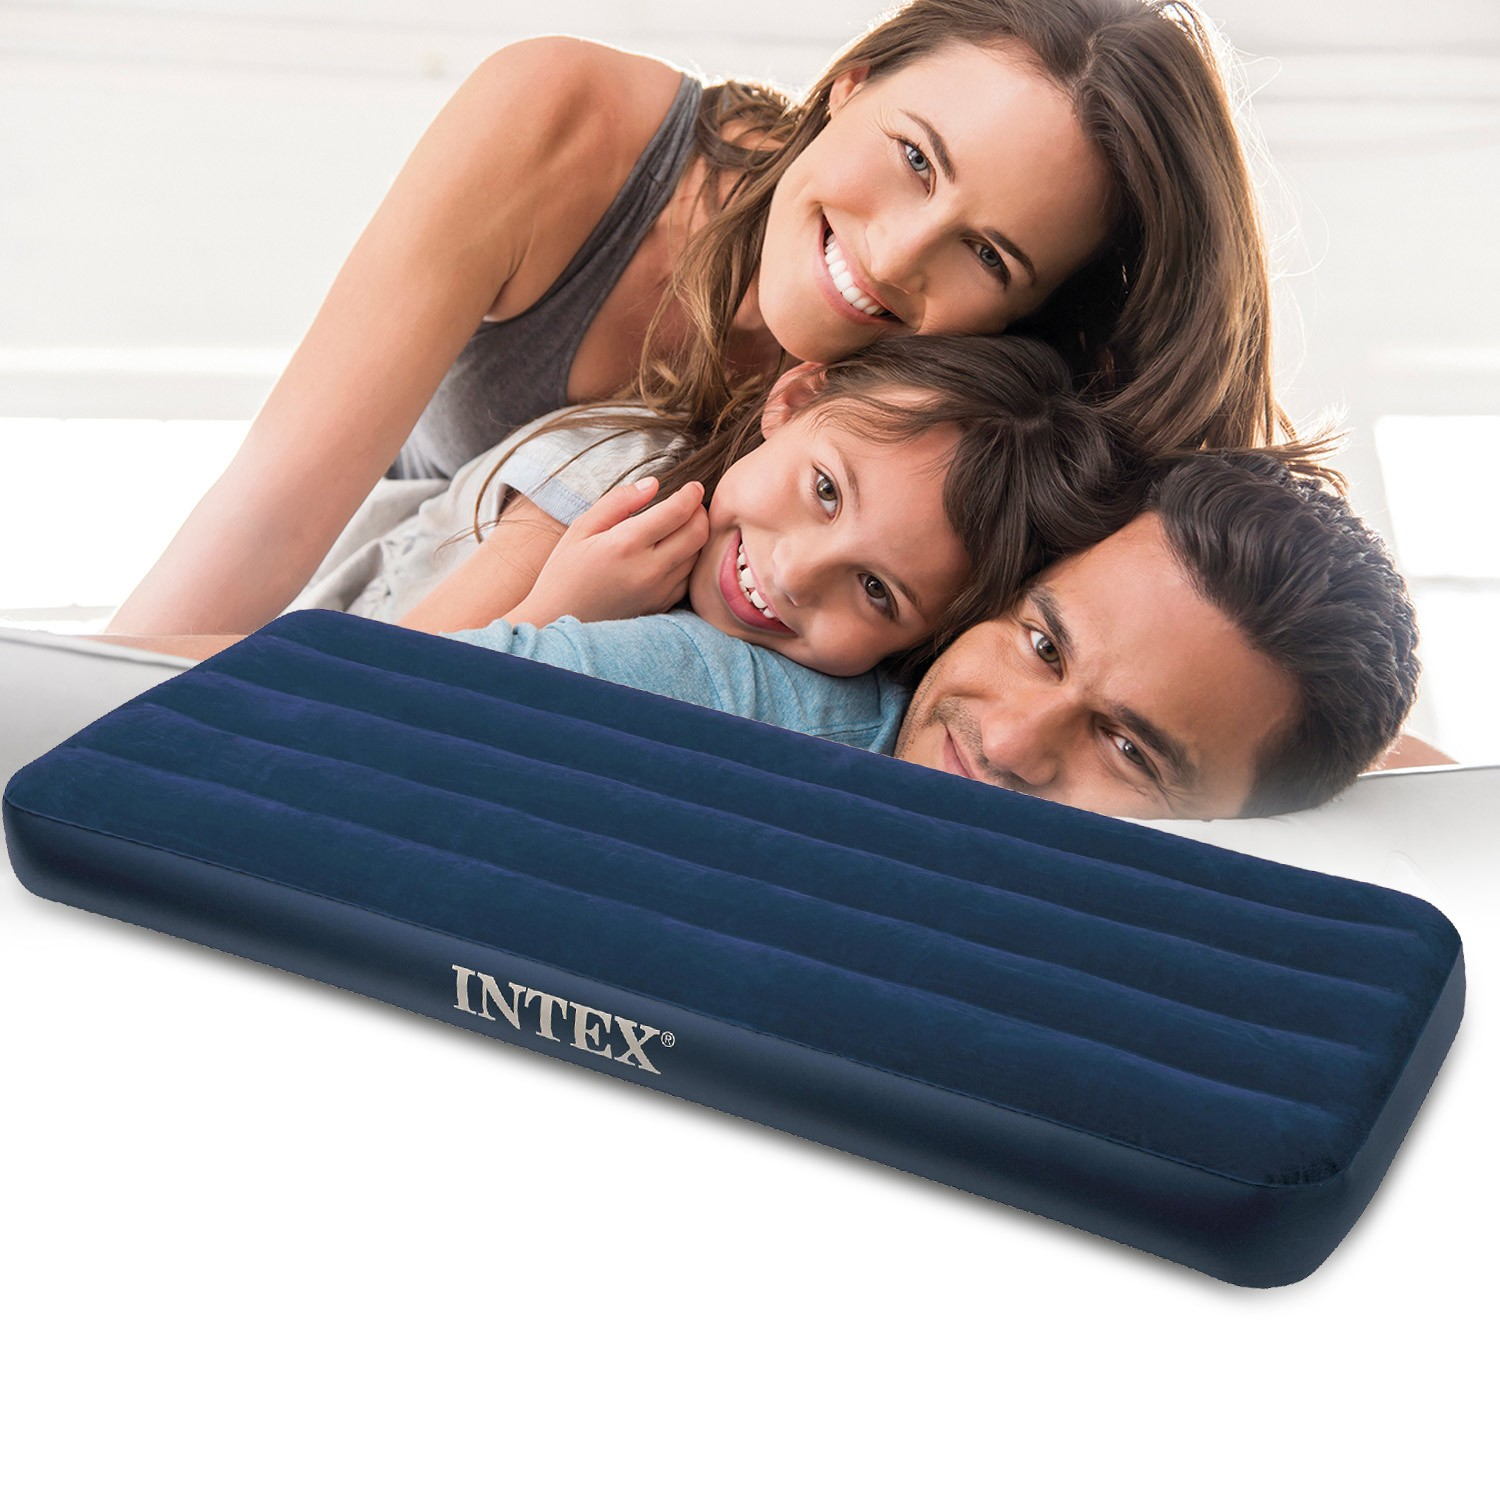 Kasur Angin / Kasur Tidur Matras Angin Intex Single Bed